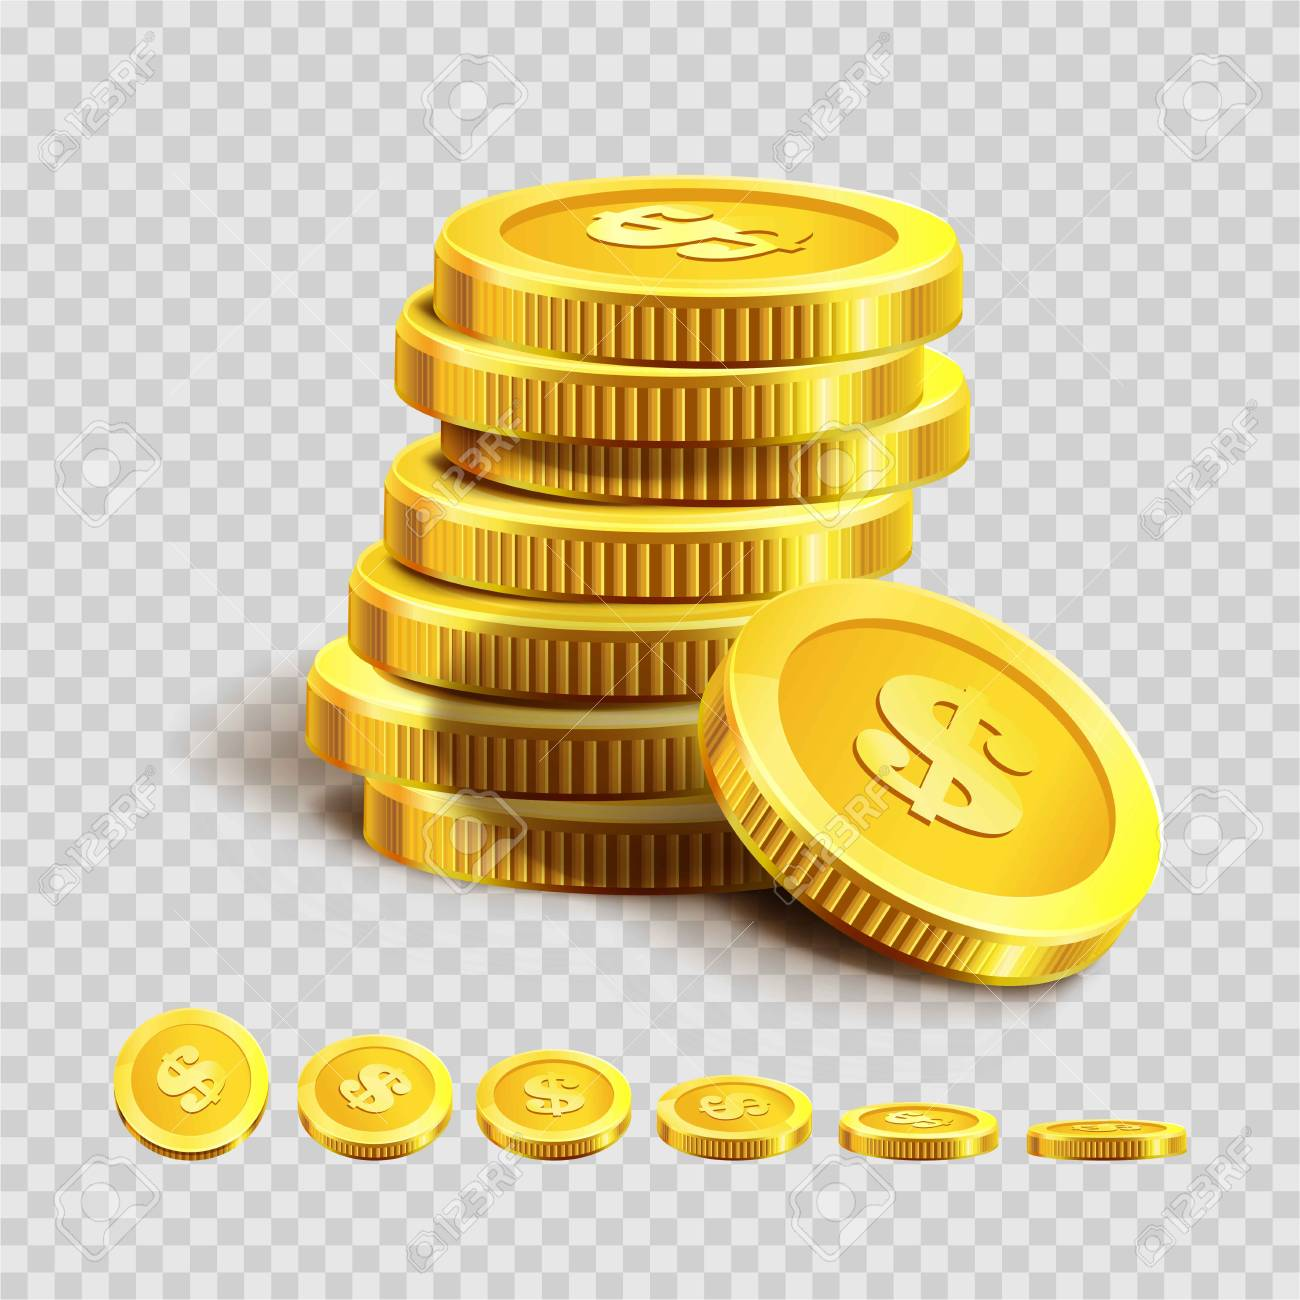 Golden Coins Piles Or Money Bank Gold Coin Heaps On Vector Transparent Background Stock